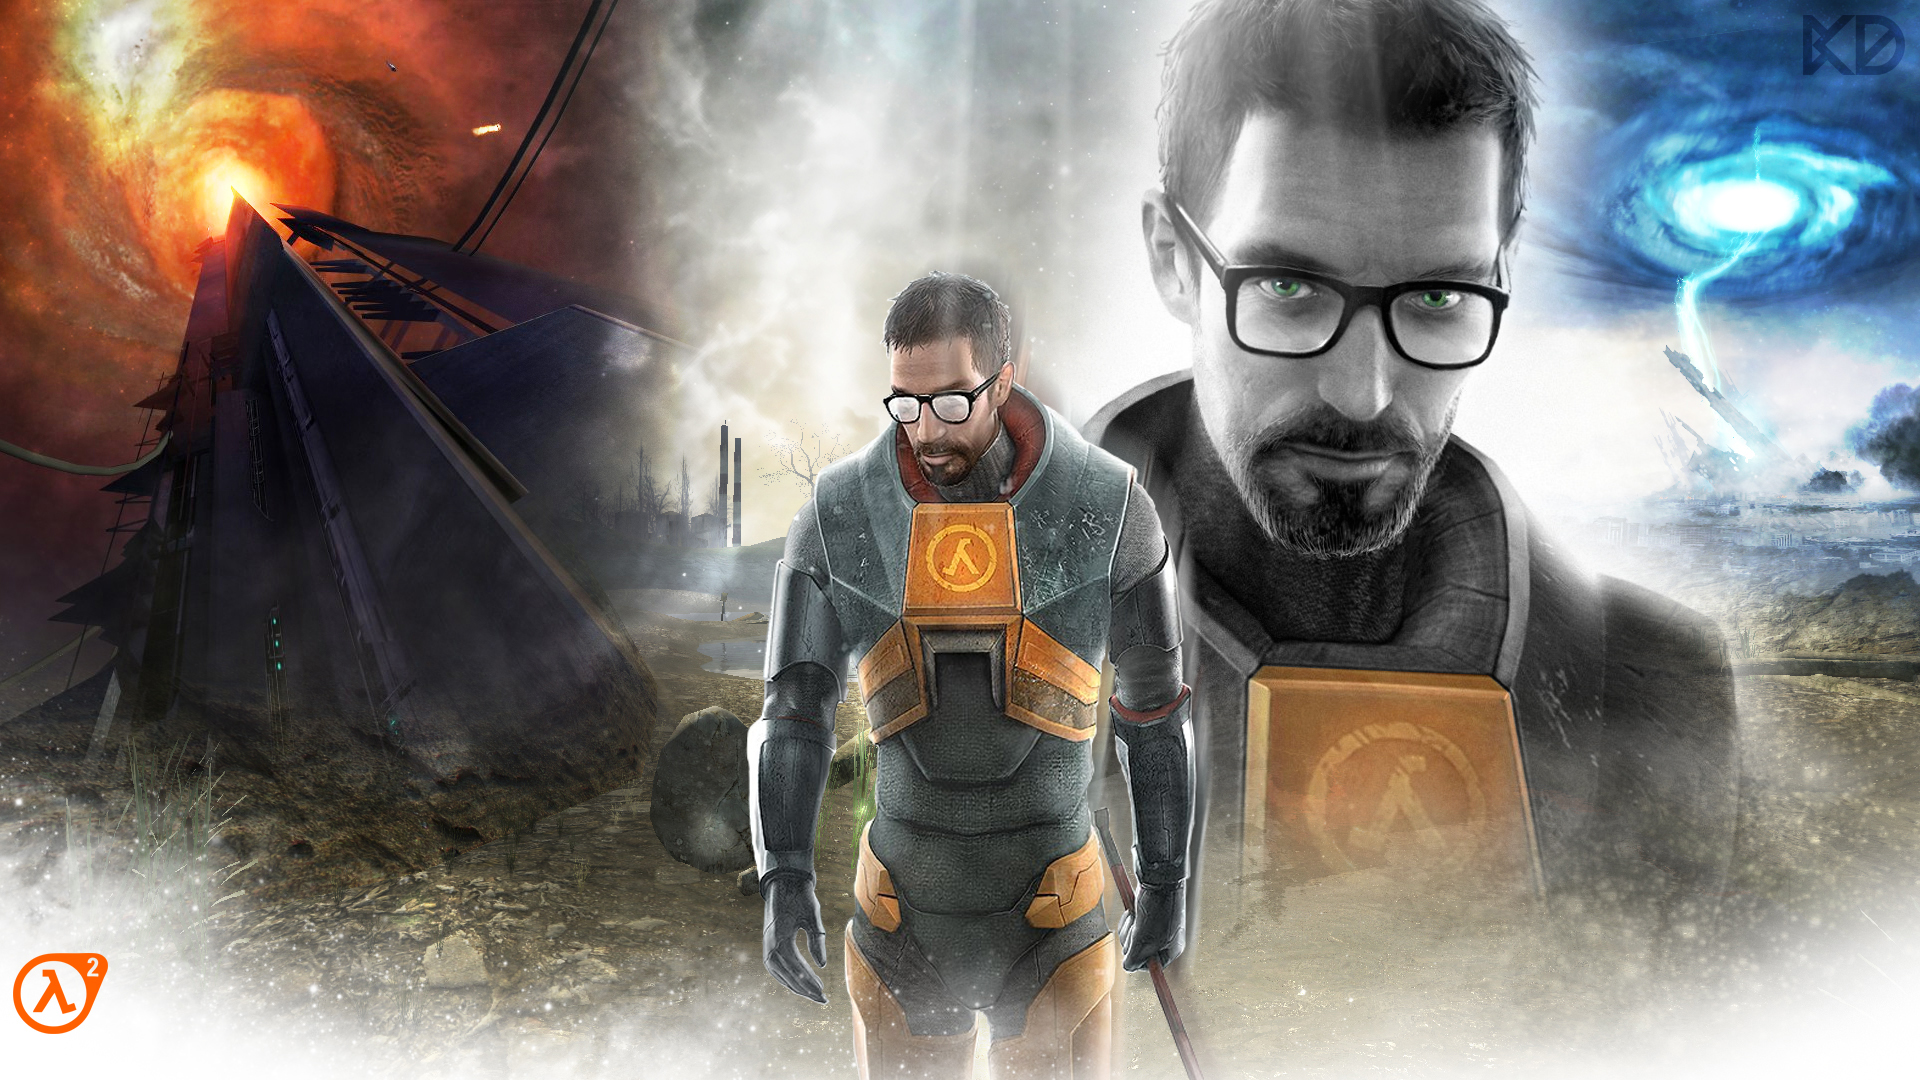 Half Life 2 Gordon Freeman Wallpaper For Zenclare By Kalsypher On